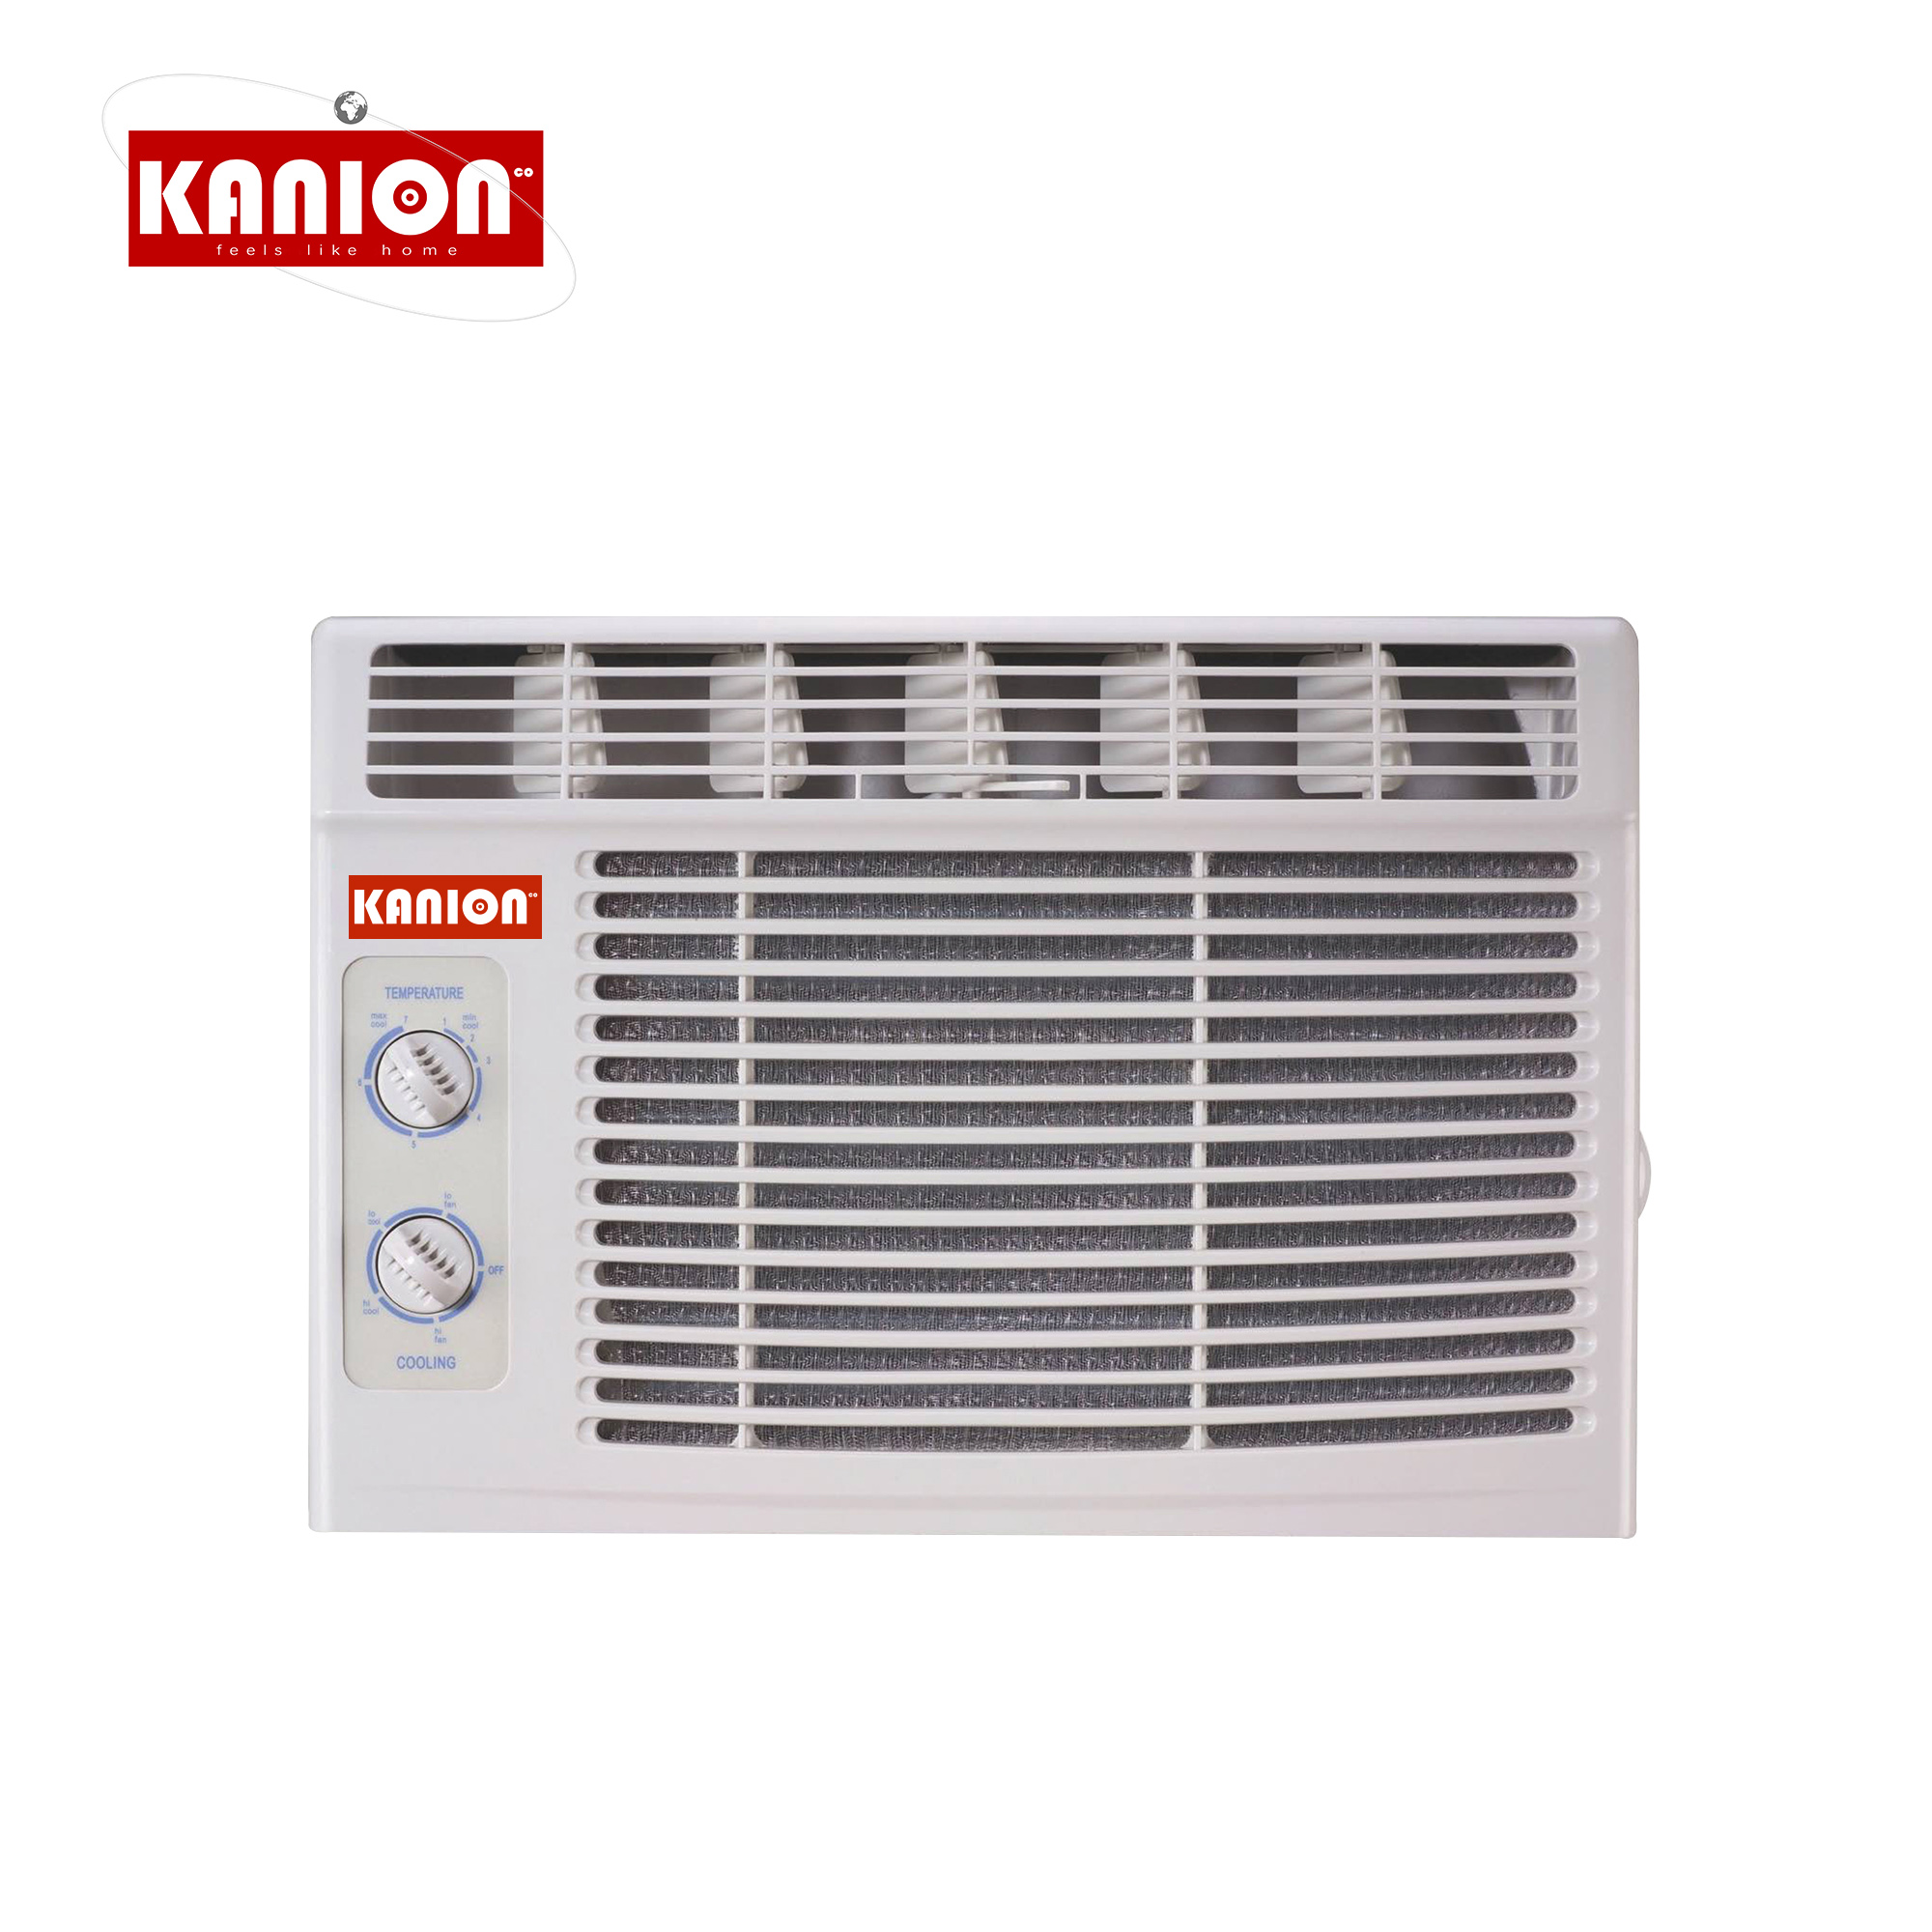 5 star T3 Window mounted <strong>ac</strong> cooling only 220-230V/1Ph/60Hz R4010a Eco friendly Saudi Arabia window type air conditioner